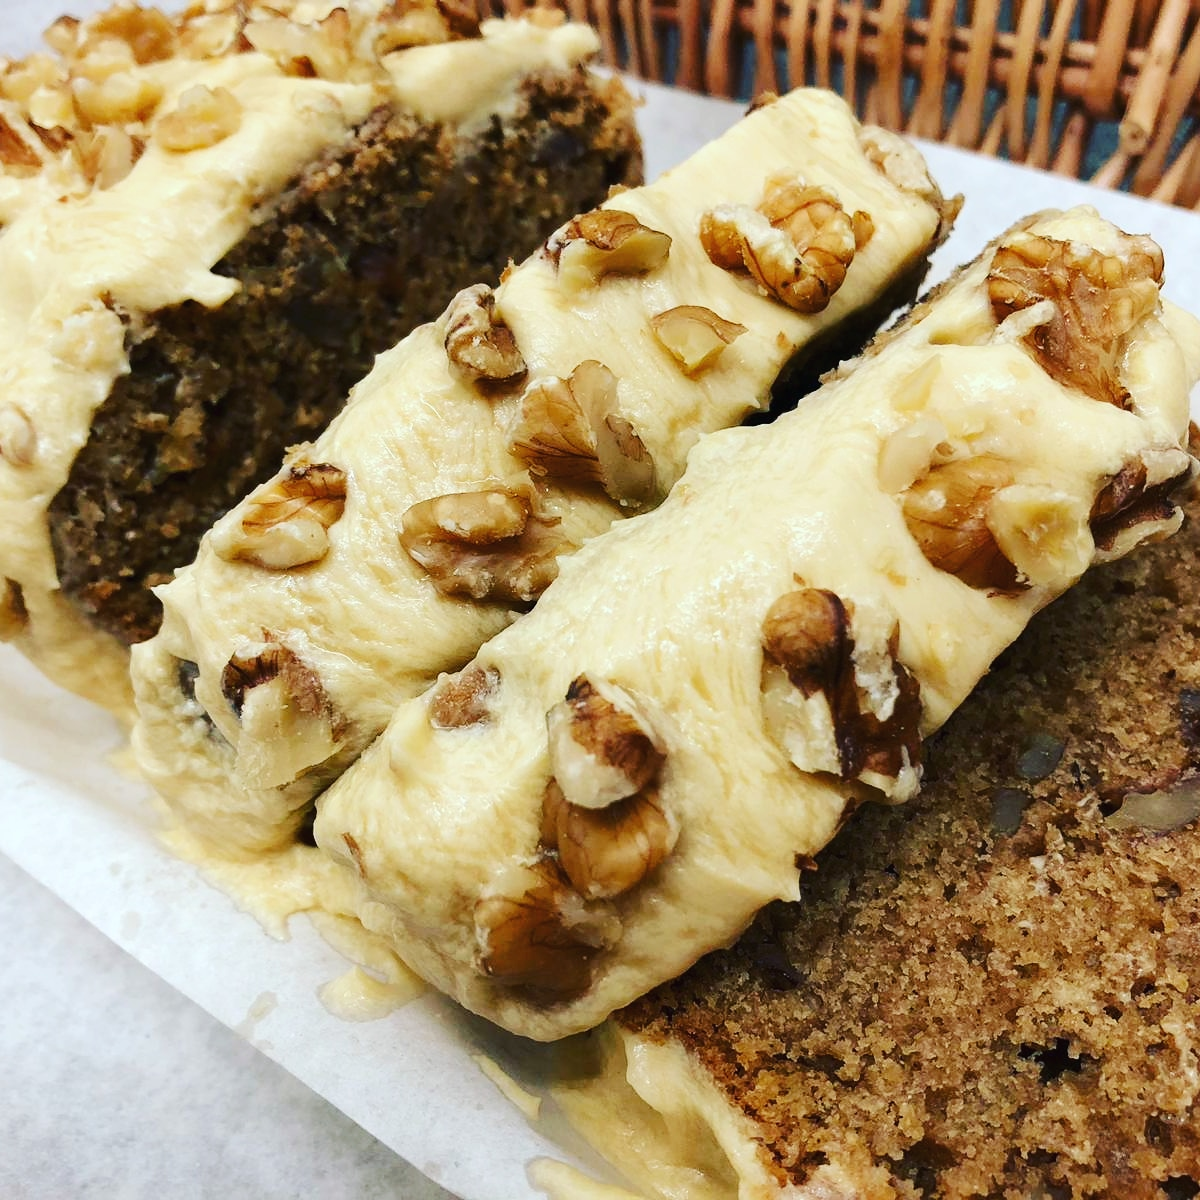 Vegan Coffee and walnut cake by The Food Rhino (greenlibdems.org.uk)